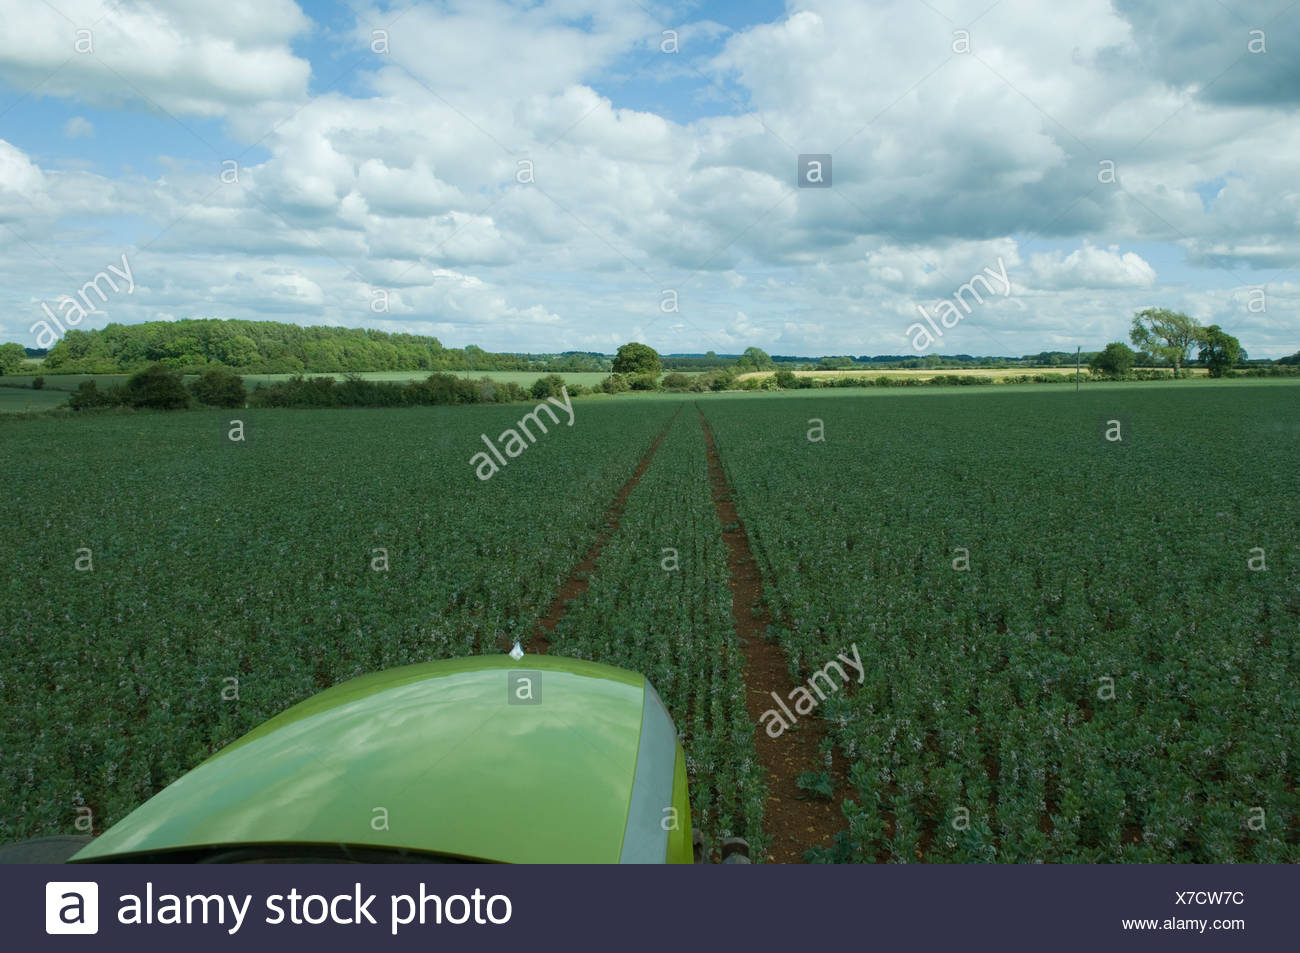 Tractor driving through wheat field - Stock Image